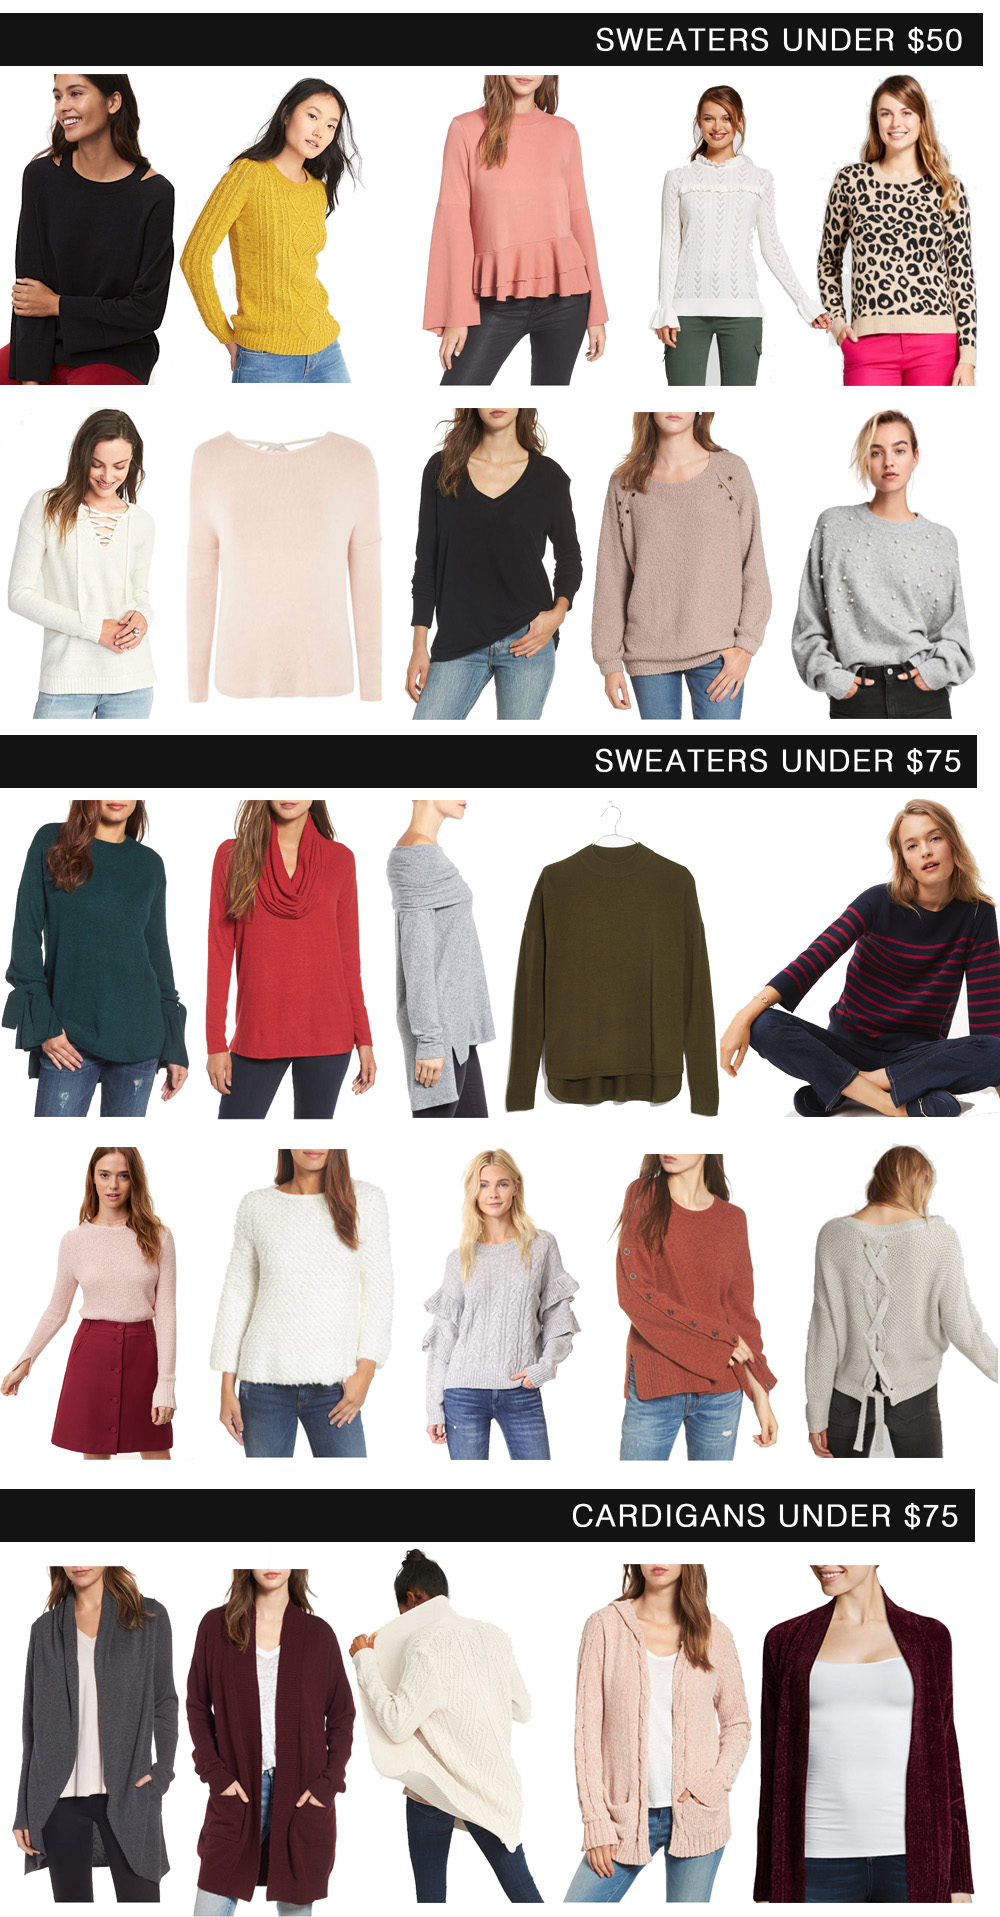 25 Super Cute Sweaters Under $75 | THE MODERN SAVVY